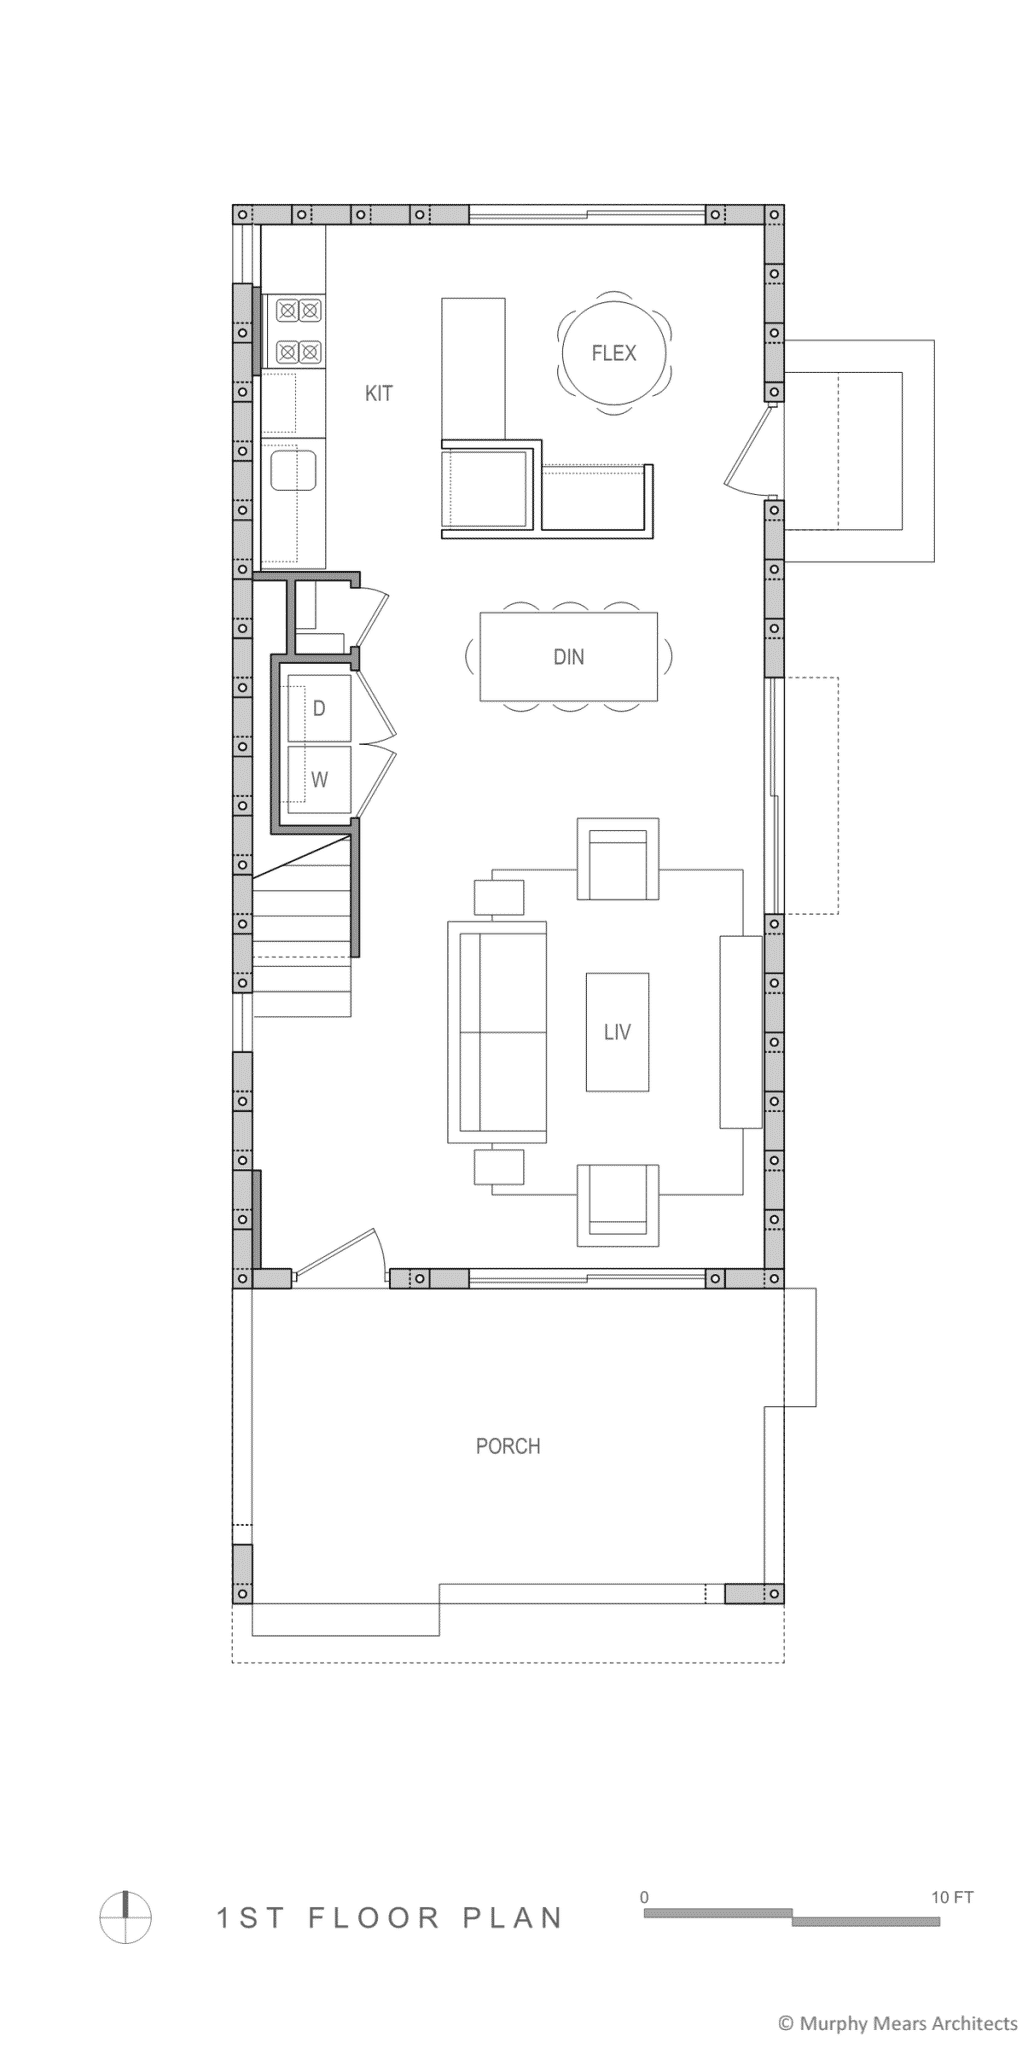 Open first floor plan within the AAC block structure.